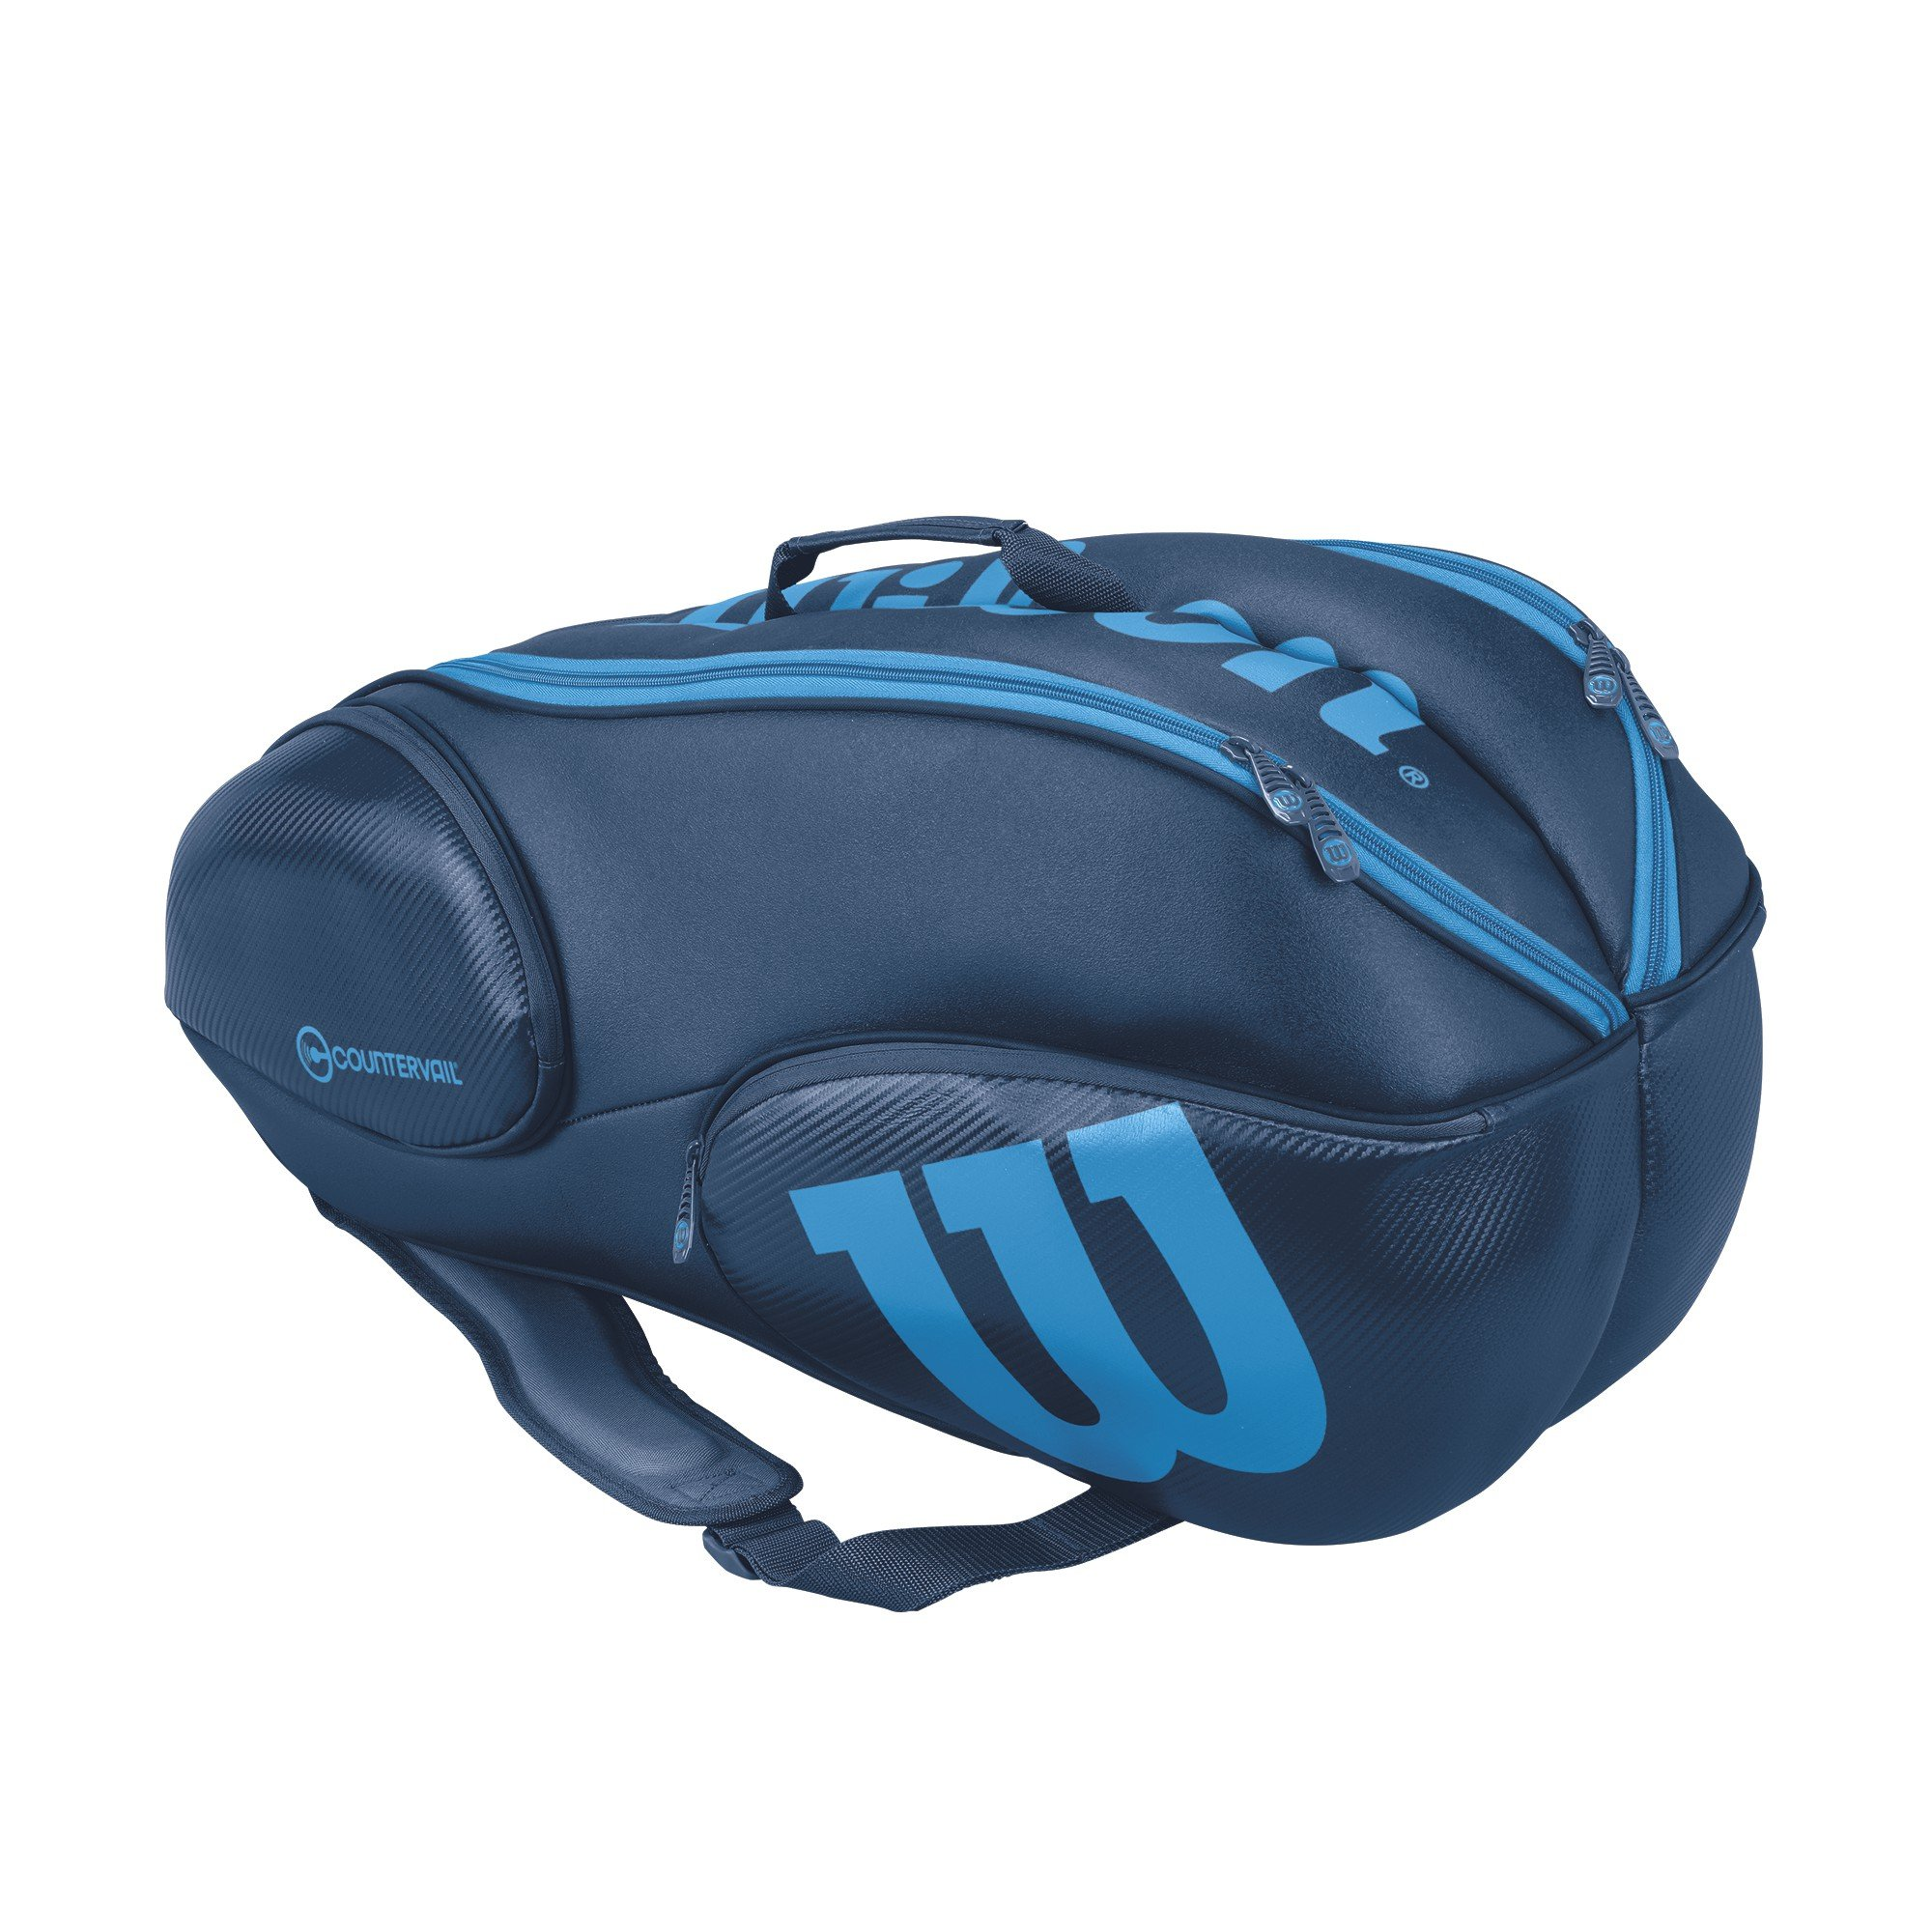 Vancouver Racket Bag, Ultra Collection - 9 Pack (Blue) by Wilson (Image #1)